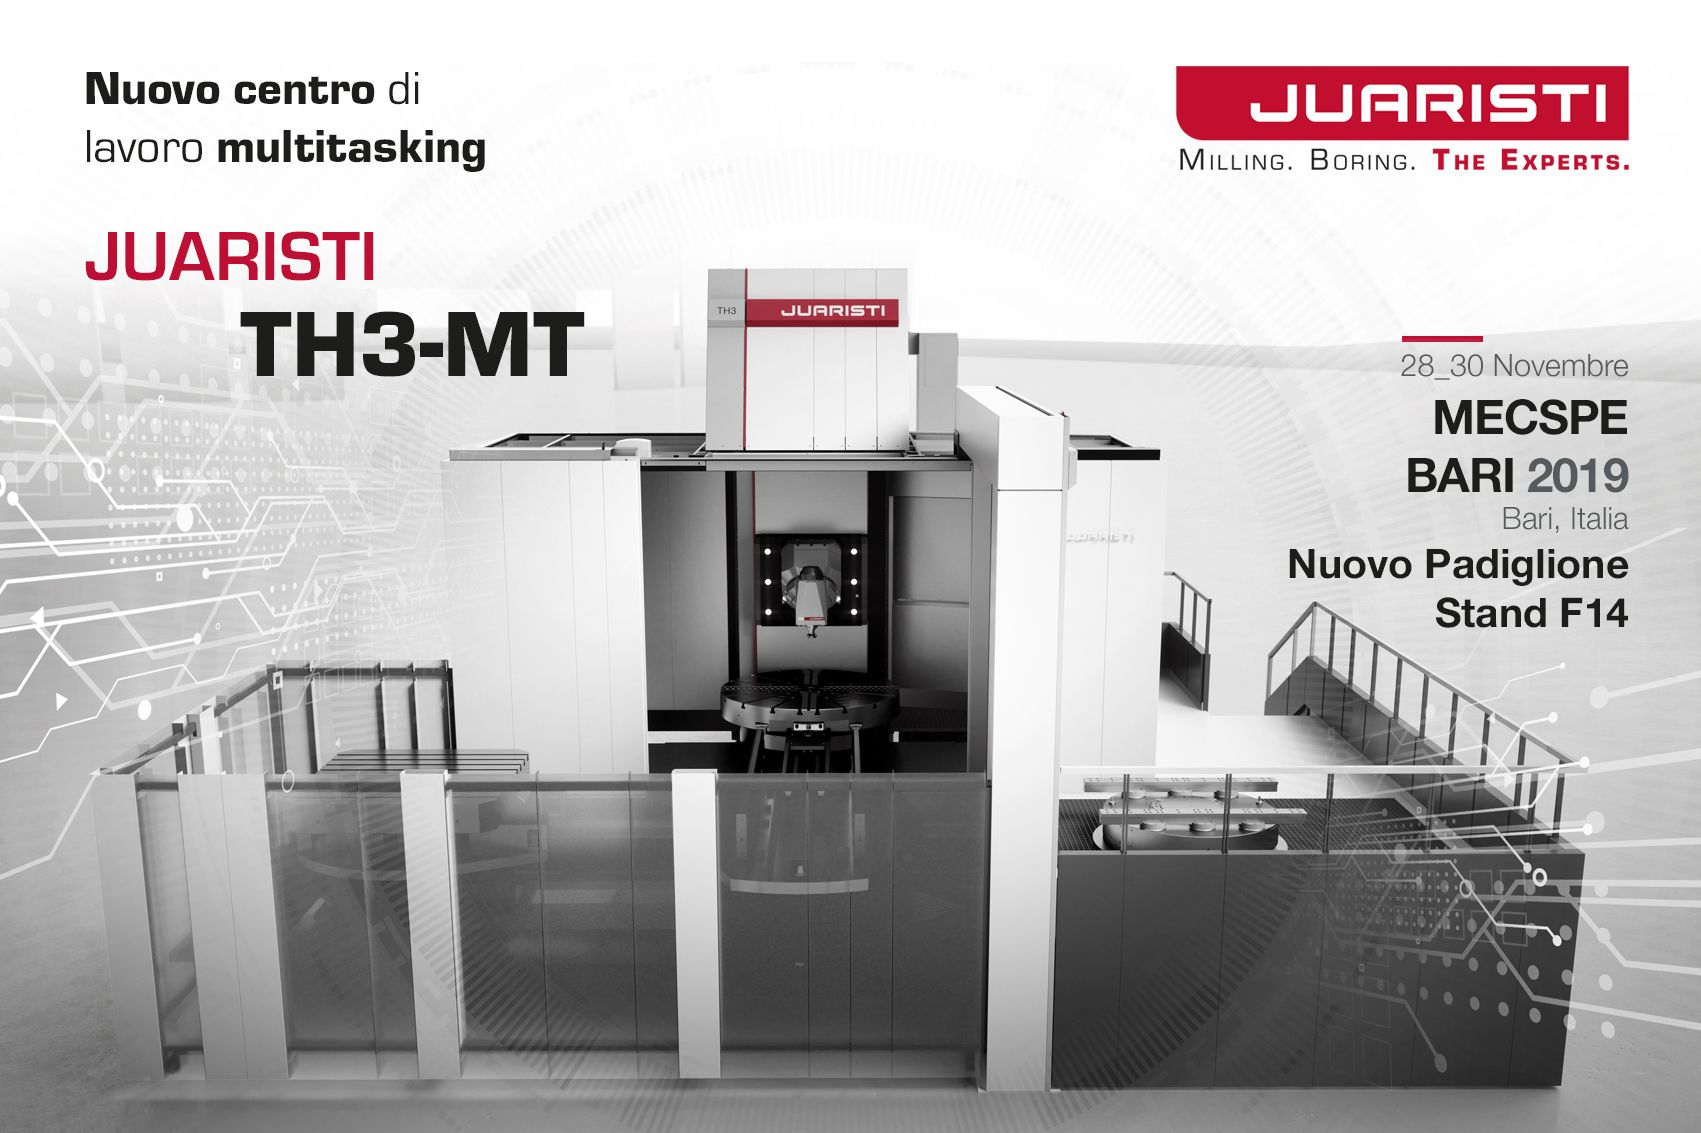 JUARISTI presents for the first time in Italy the multitasking machining center that received the highest industry accolades at the last EMO fair